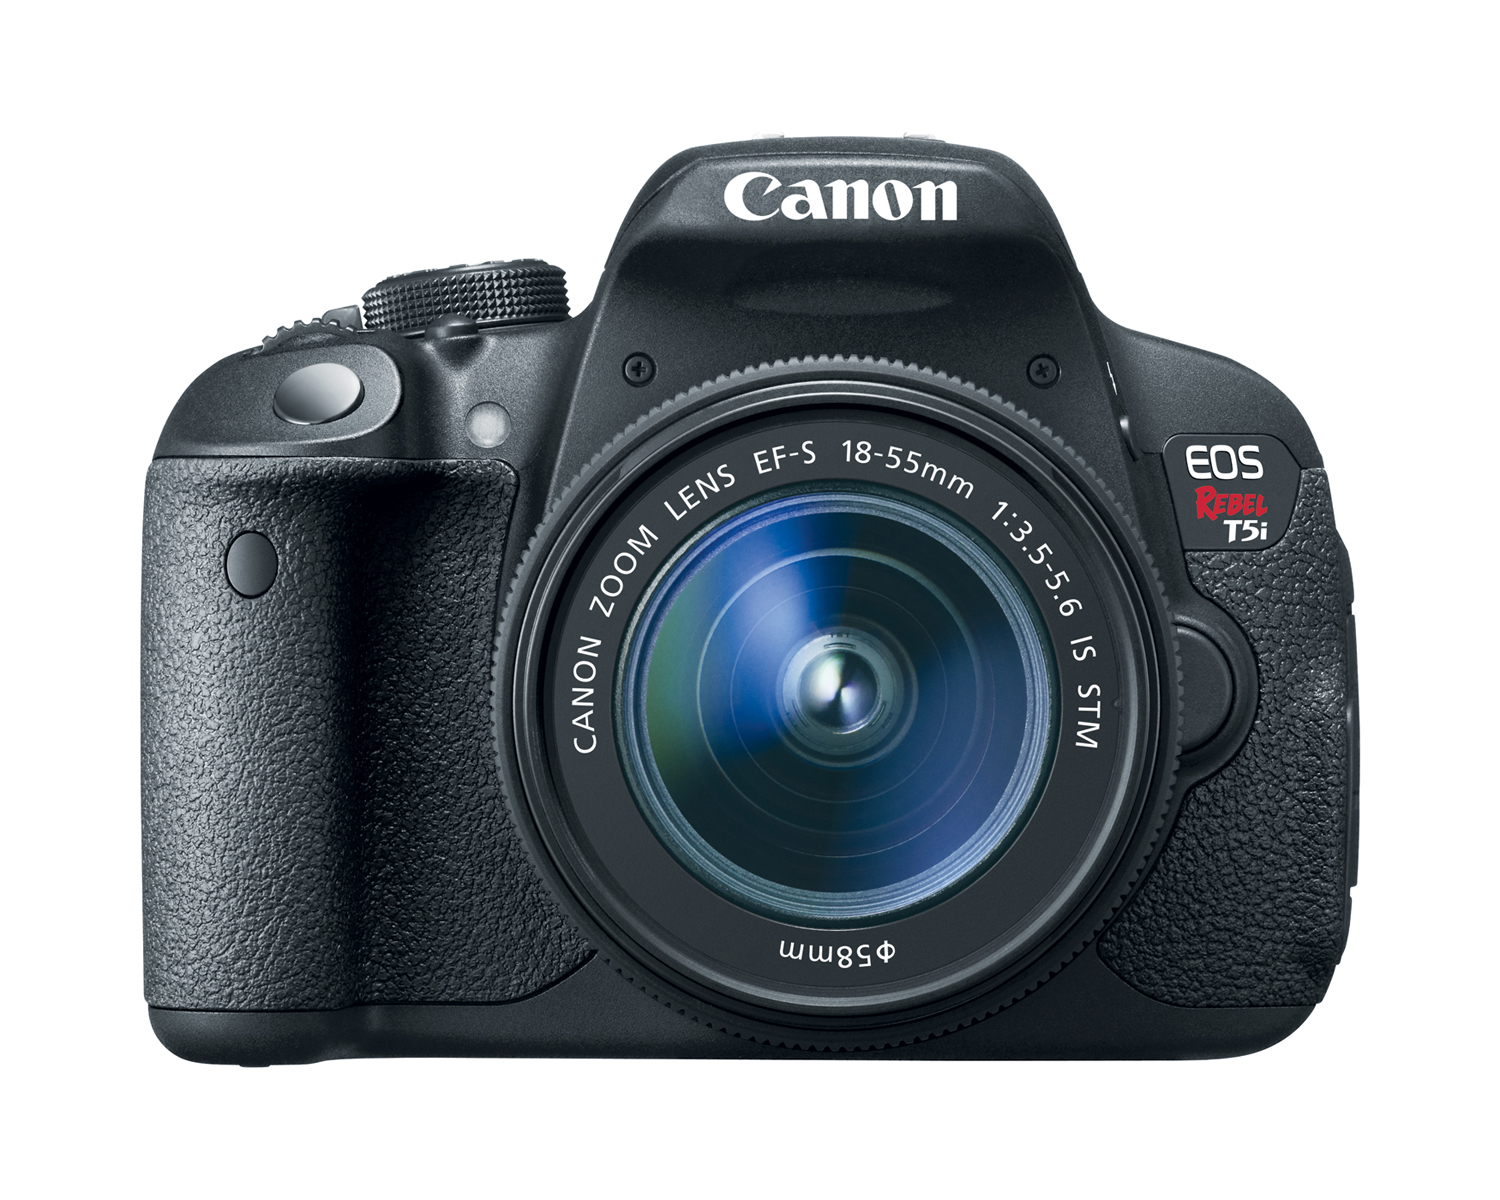 EOS Rebel T5i - Front View